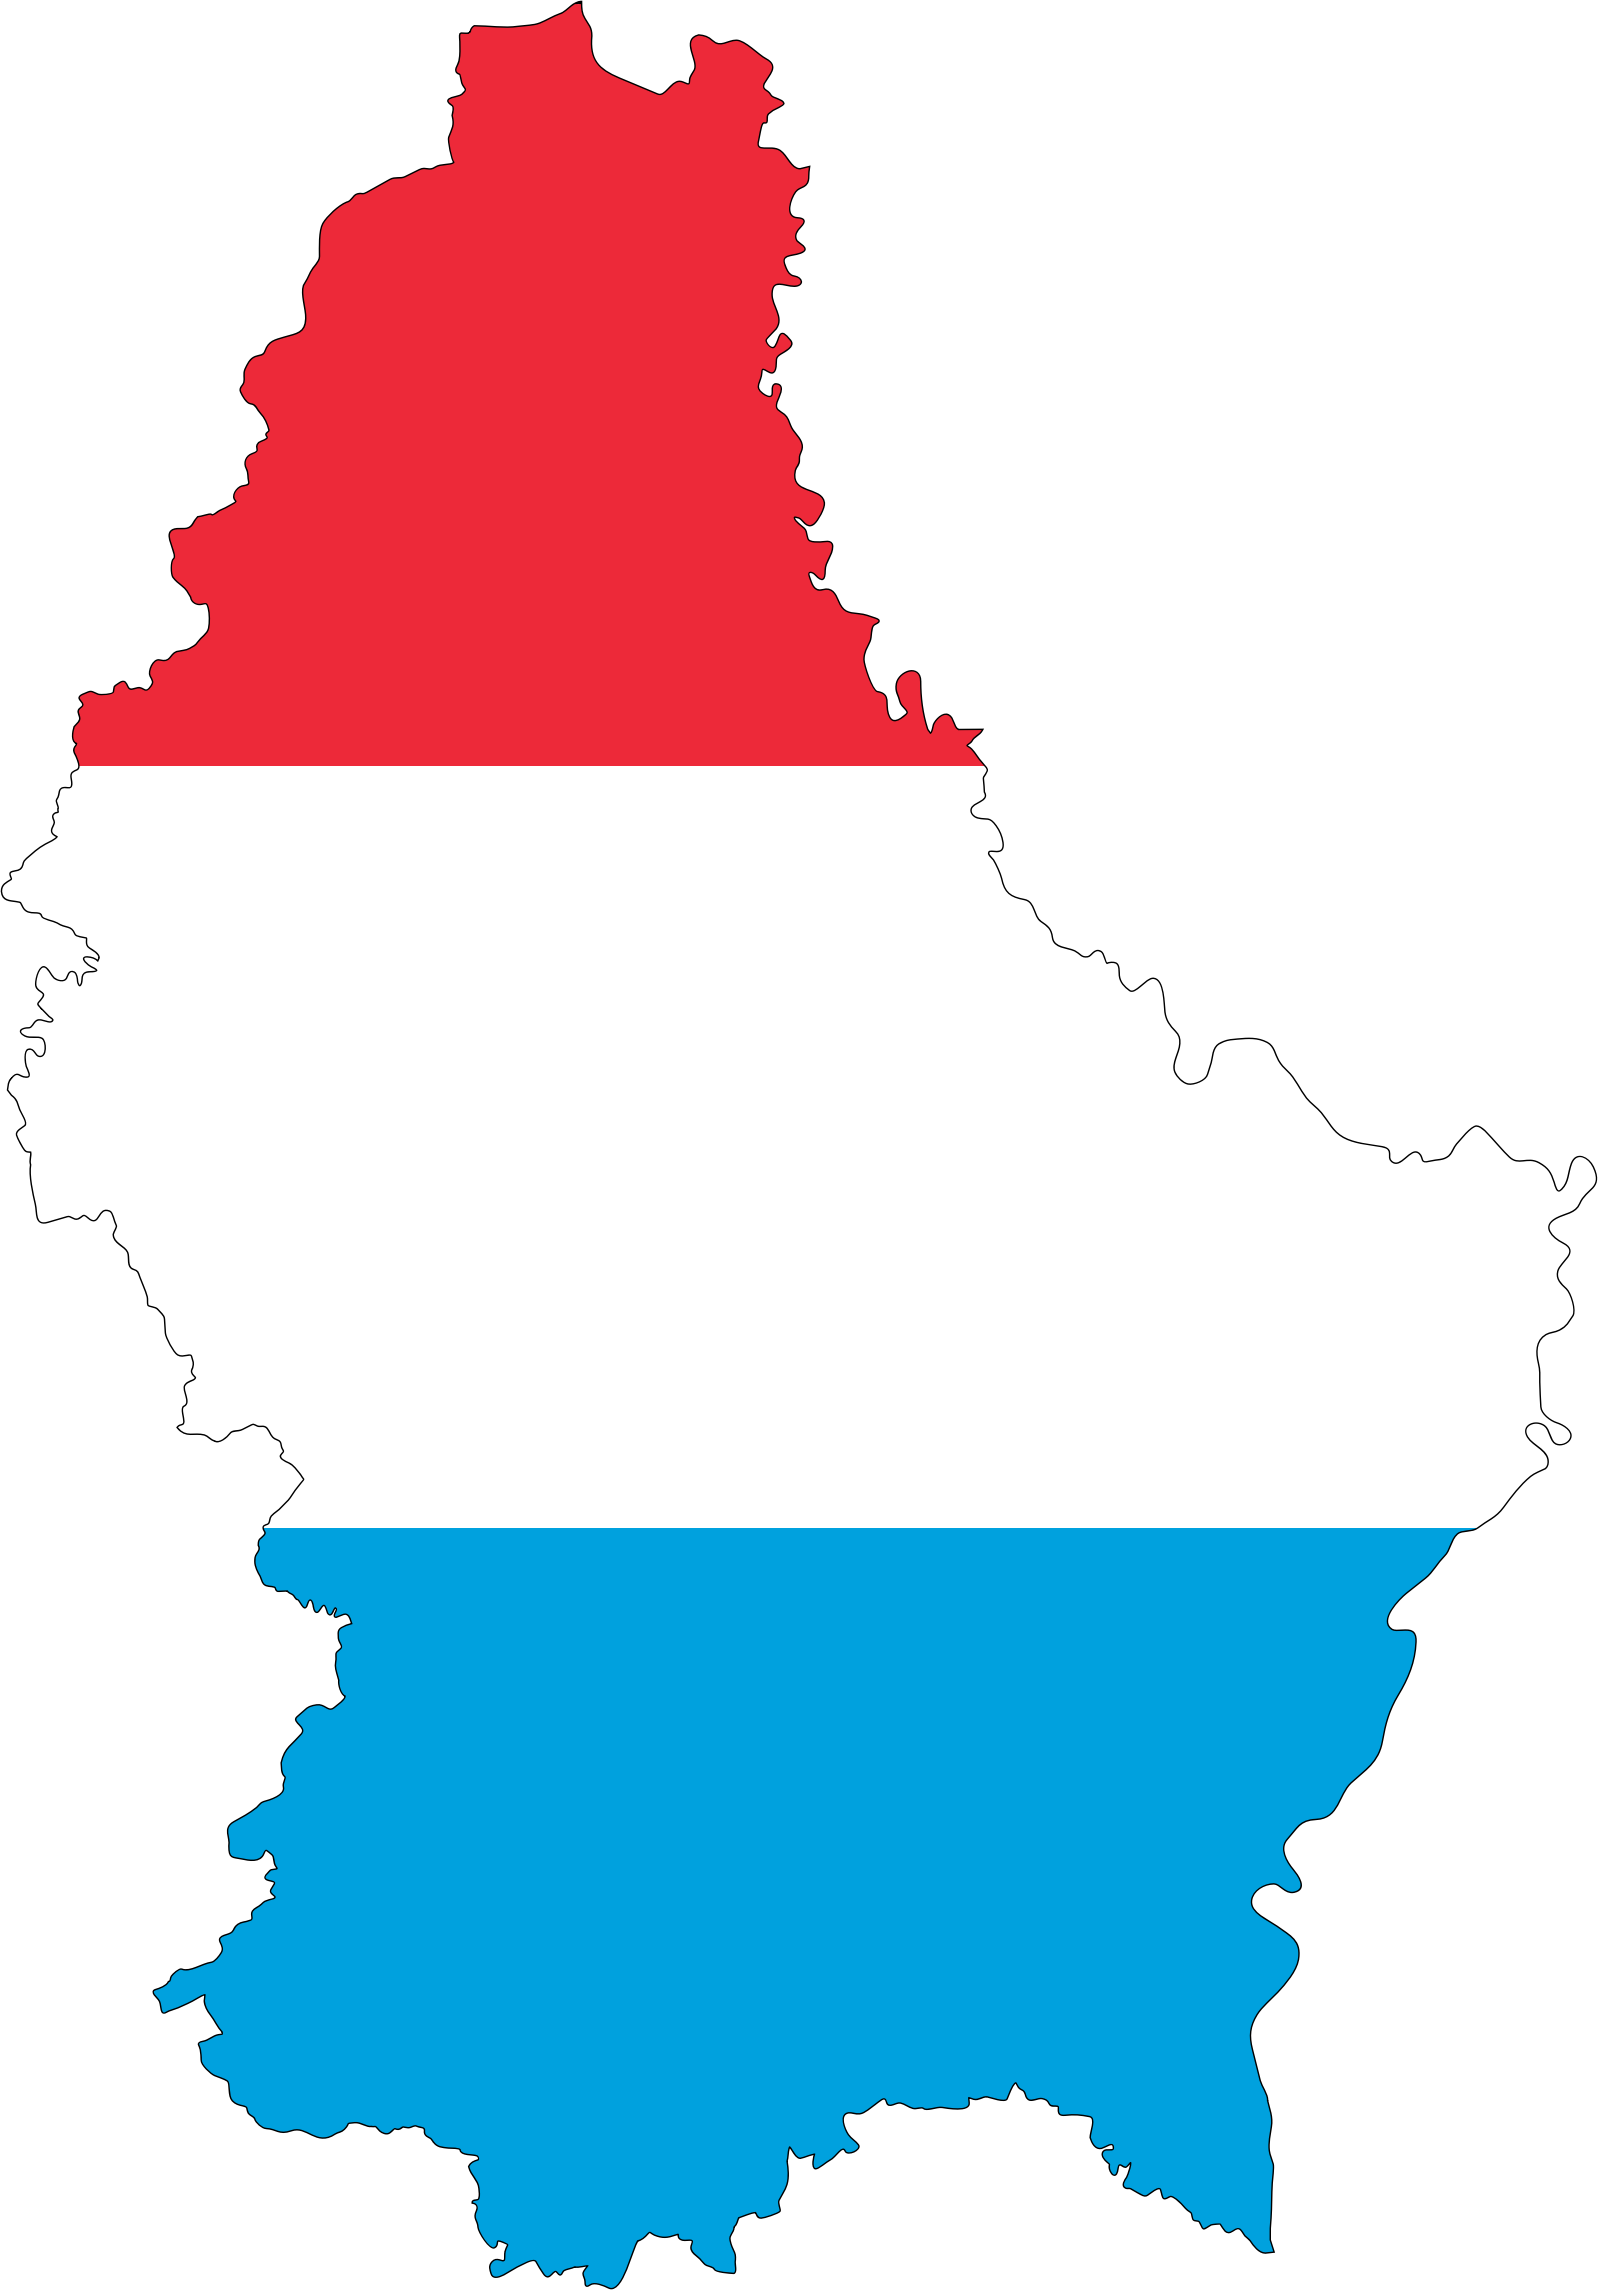 Luxembourg Map Flag With Stroke by GDJ